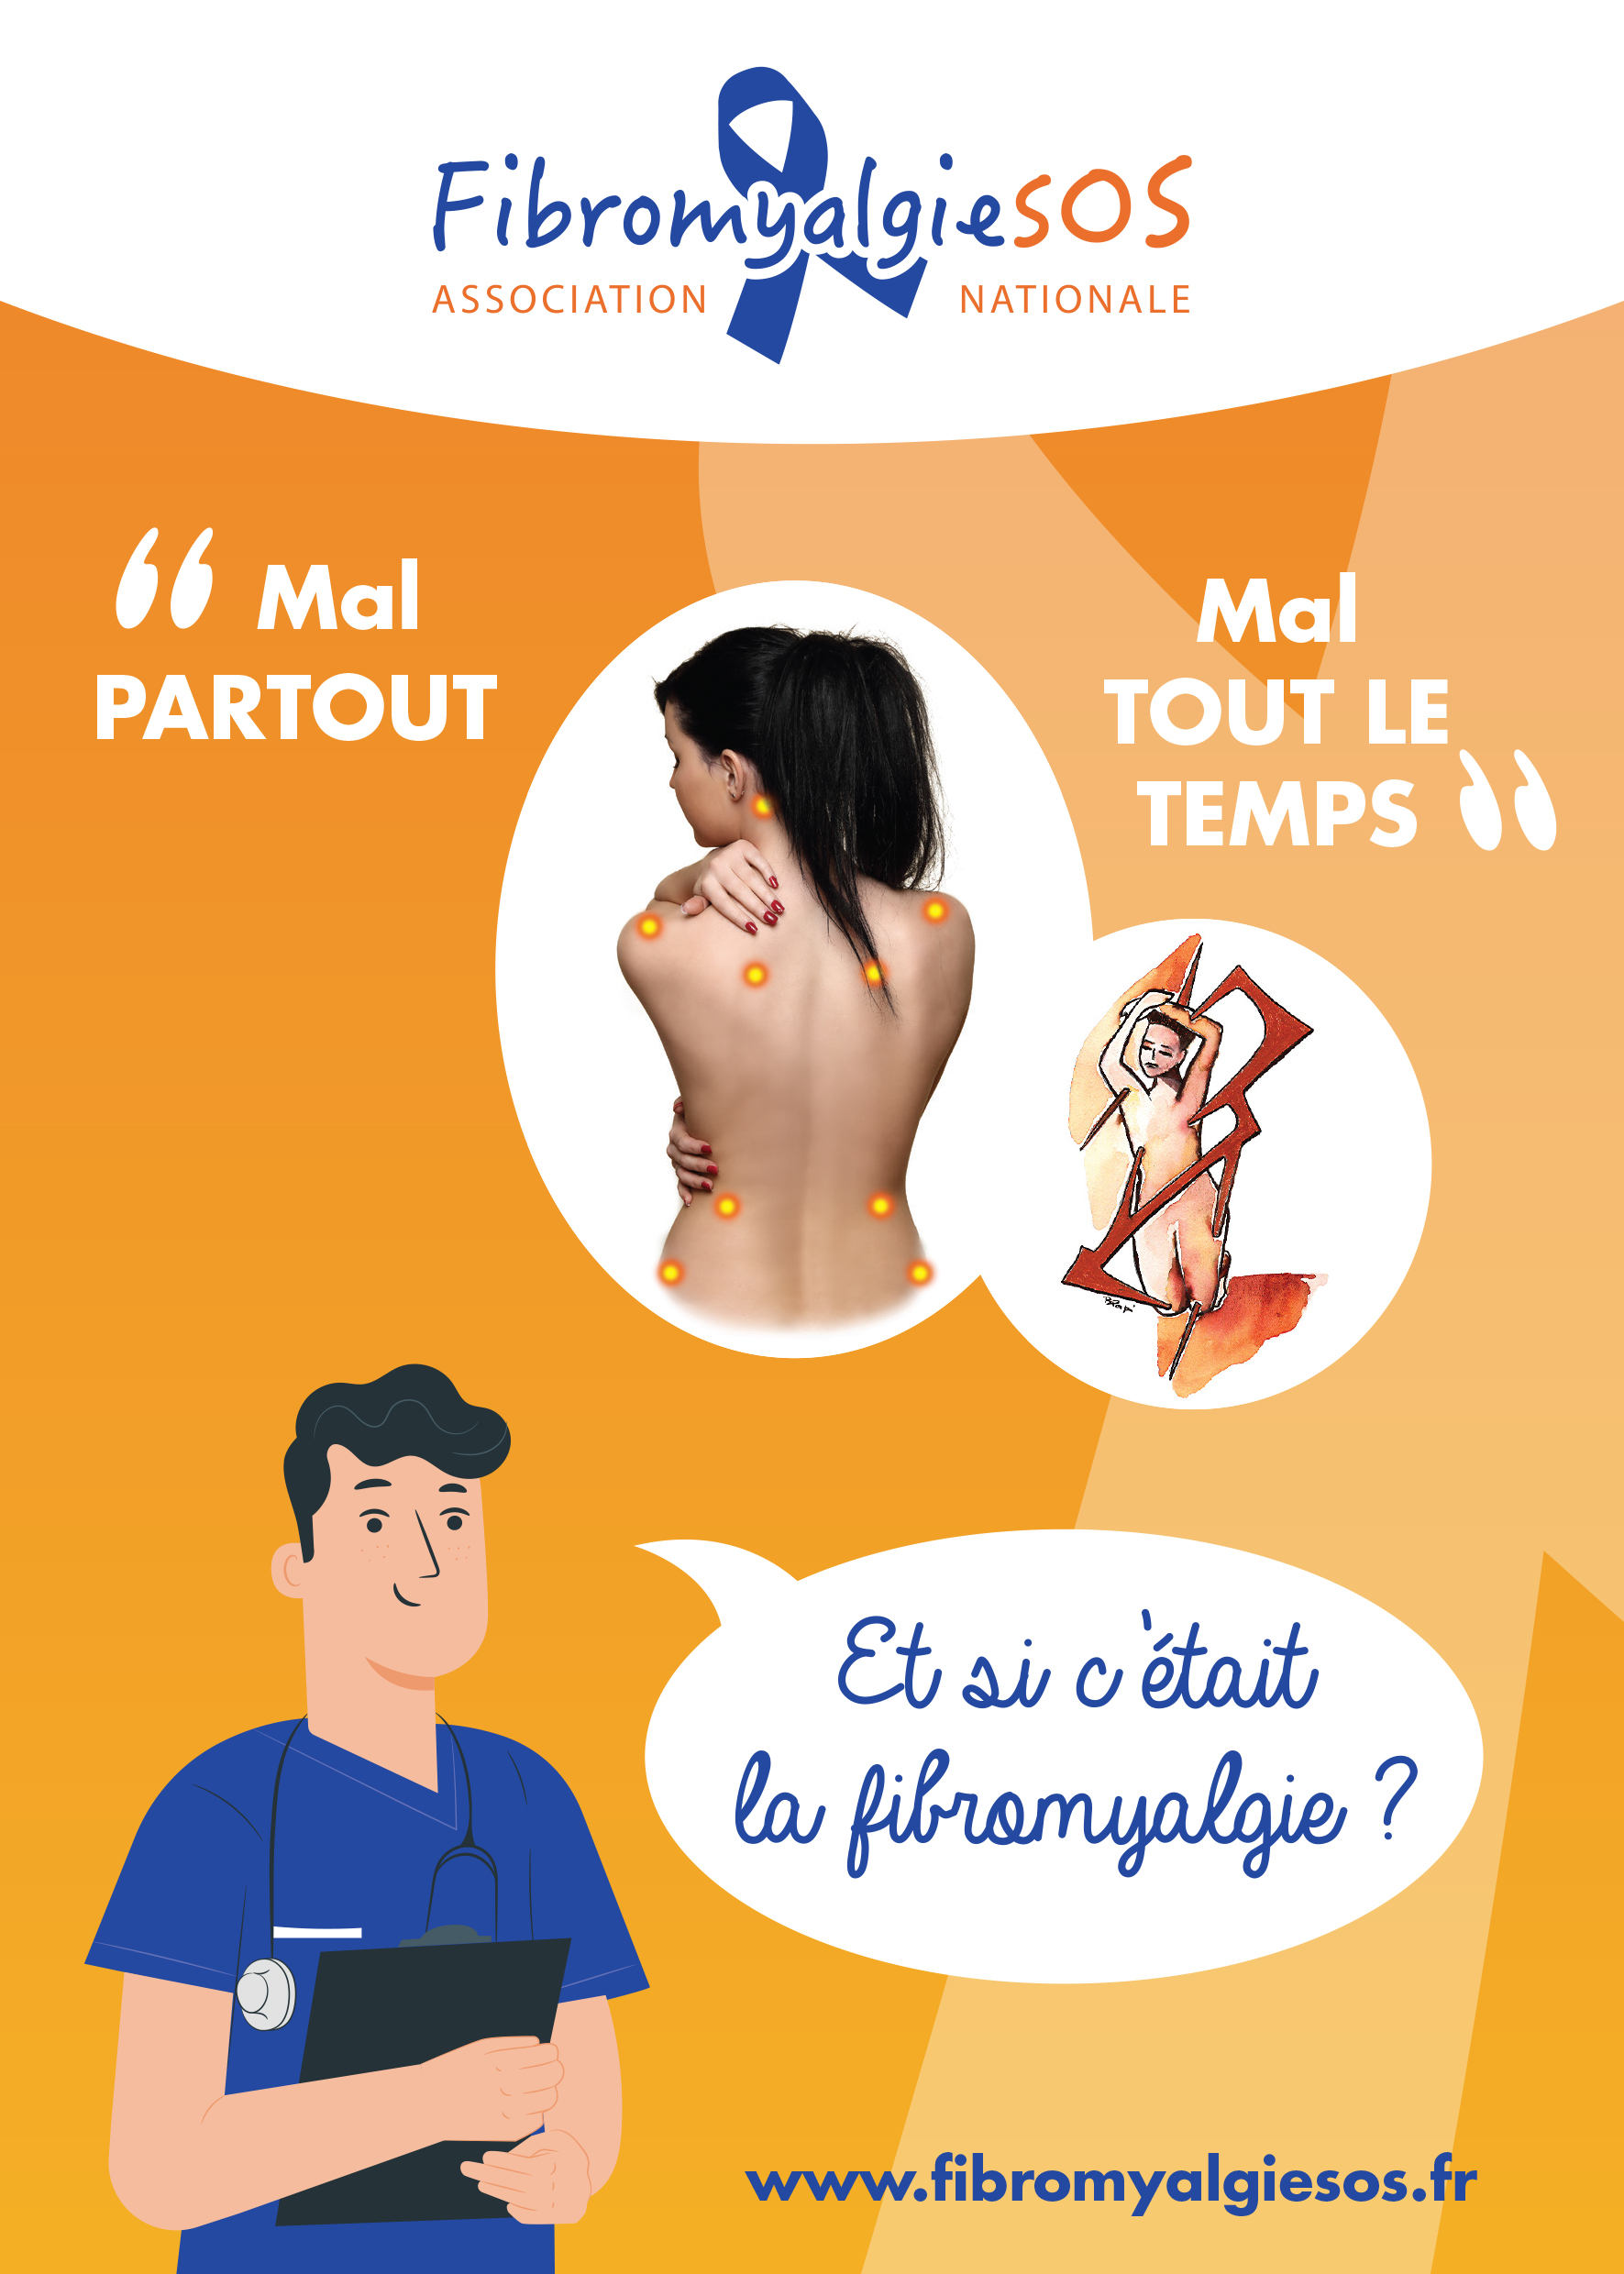 Plaquette de l'association Fibromyalgie SOS